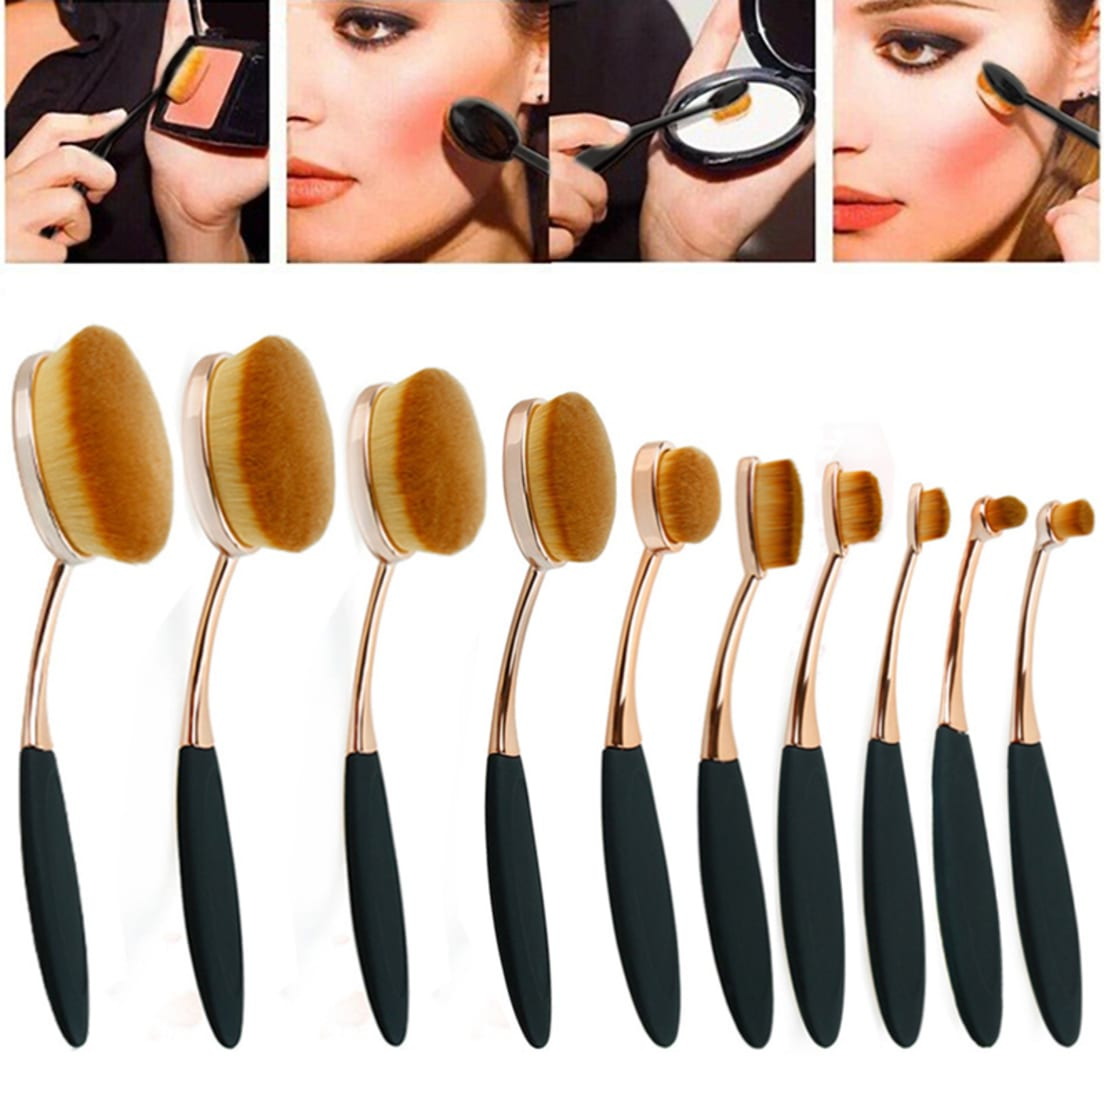 Zoe Ayla Oval Makeup Brushes Review Creativmakeup Co